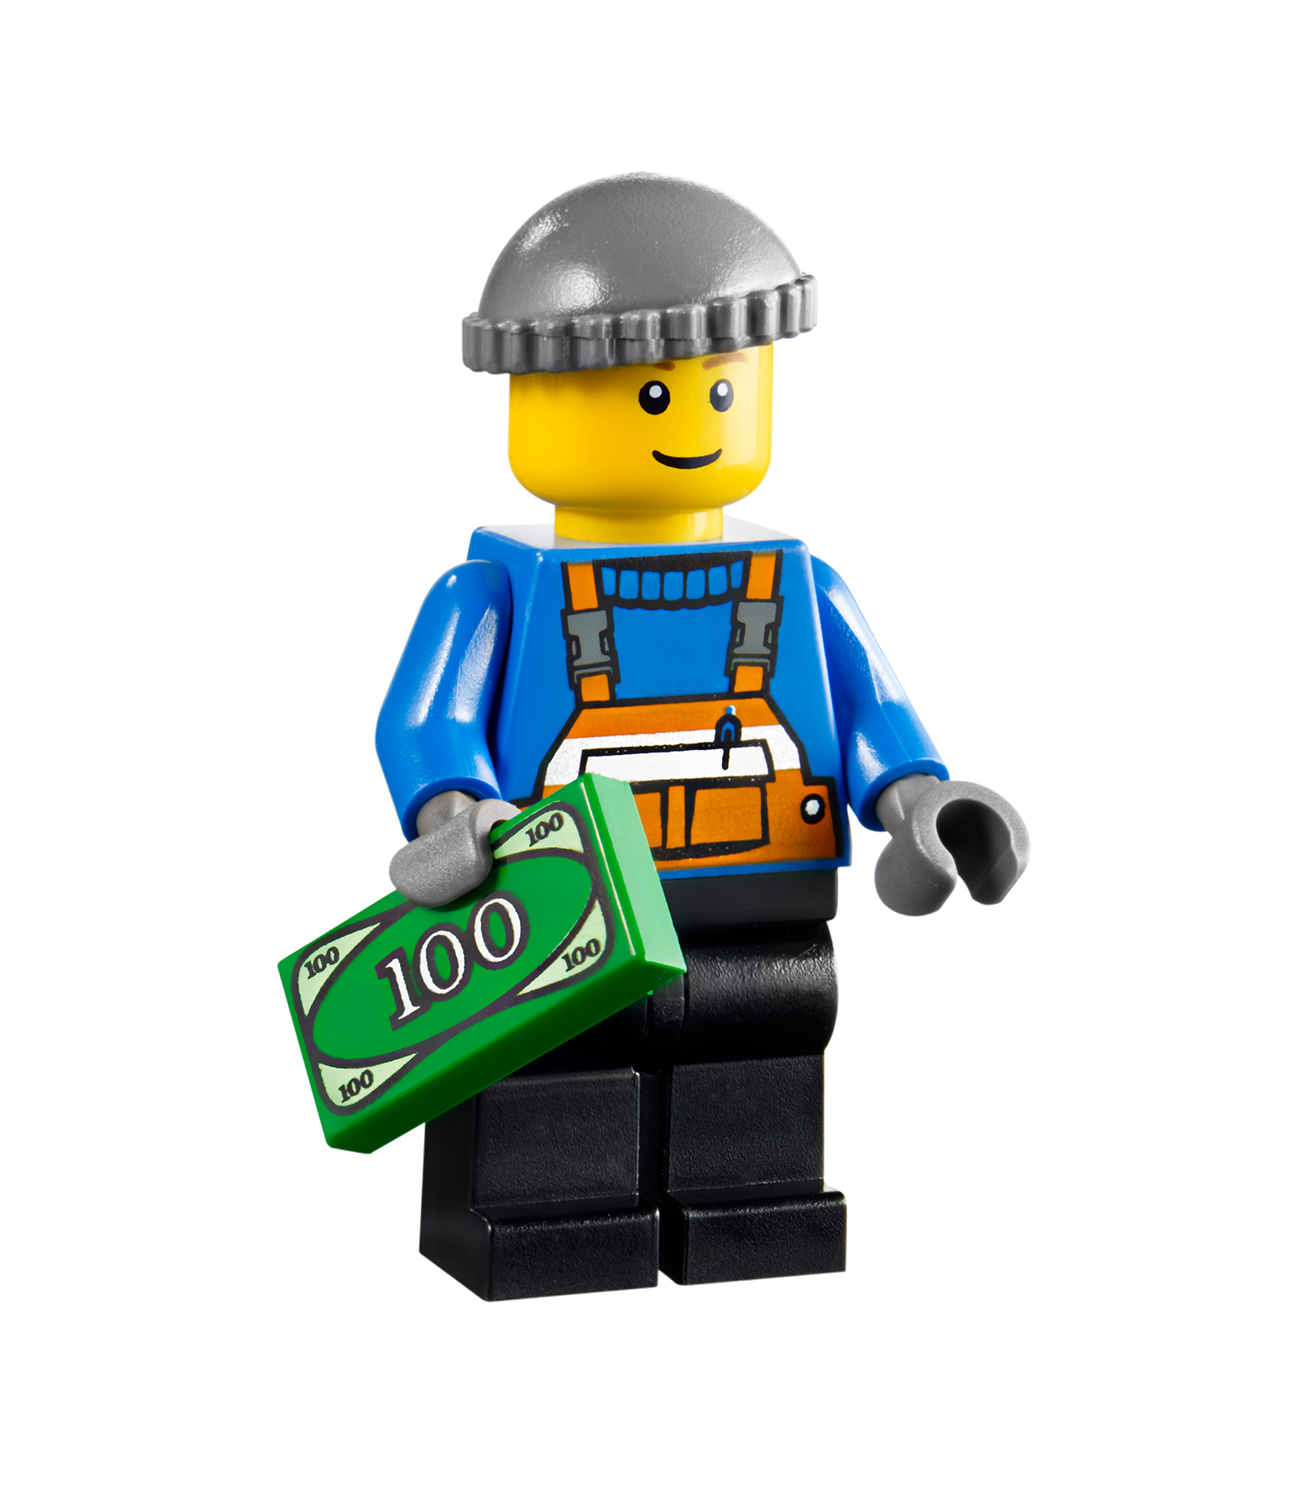 s_10216_minifigure_6_hr.jpg